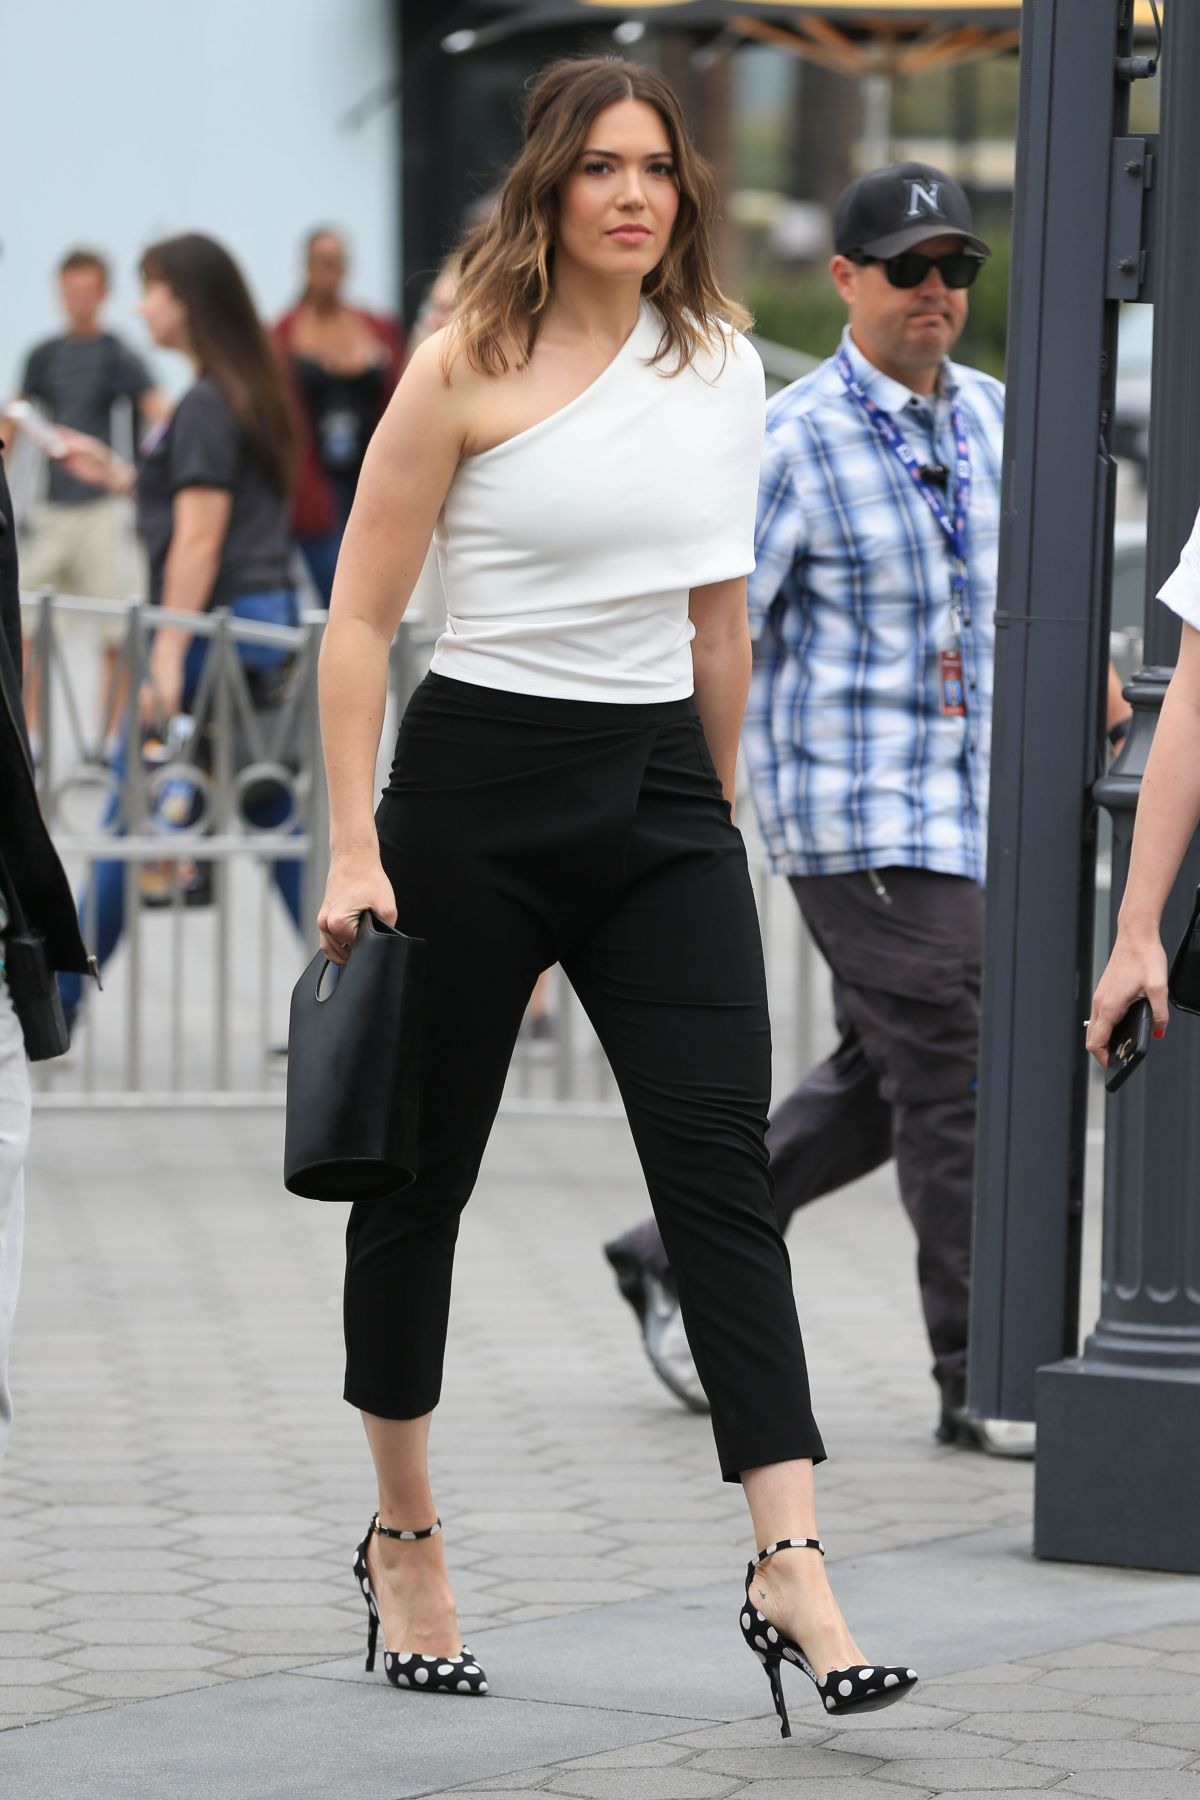 Mandy Moore At 'Extra' in Universal City   mandy-moore-at-extra-in-universal-city-_7